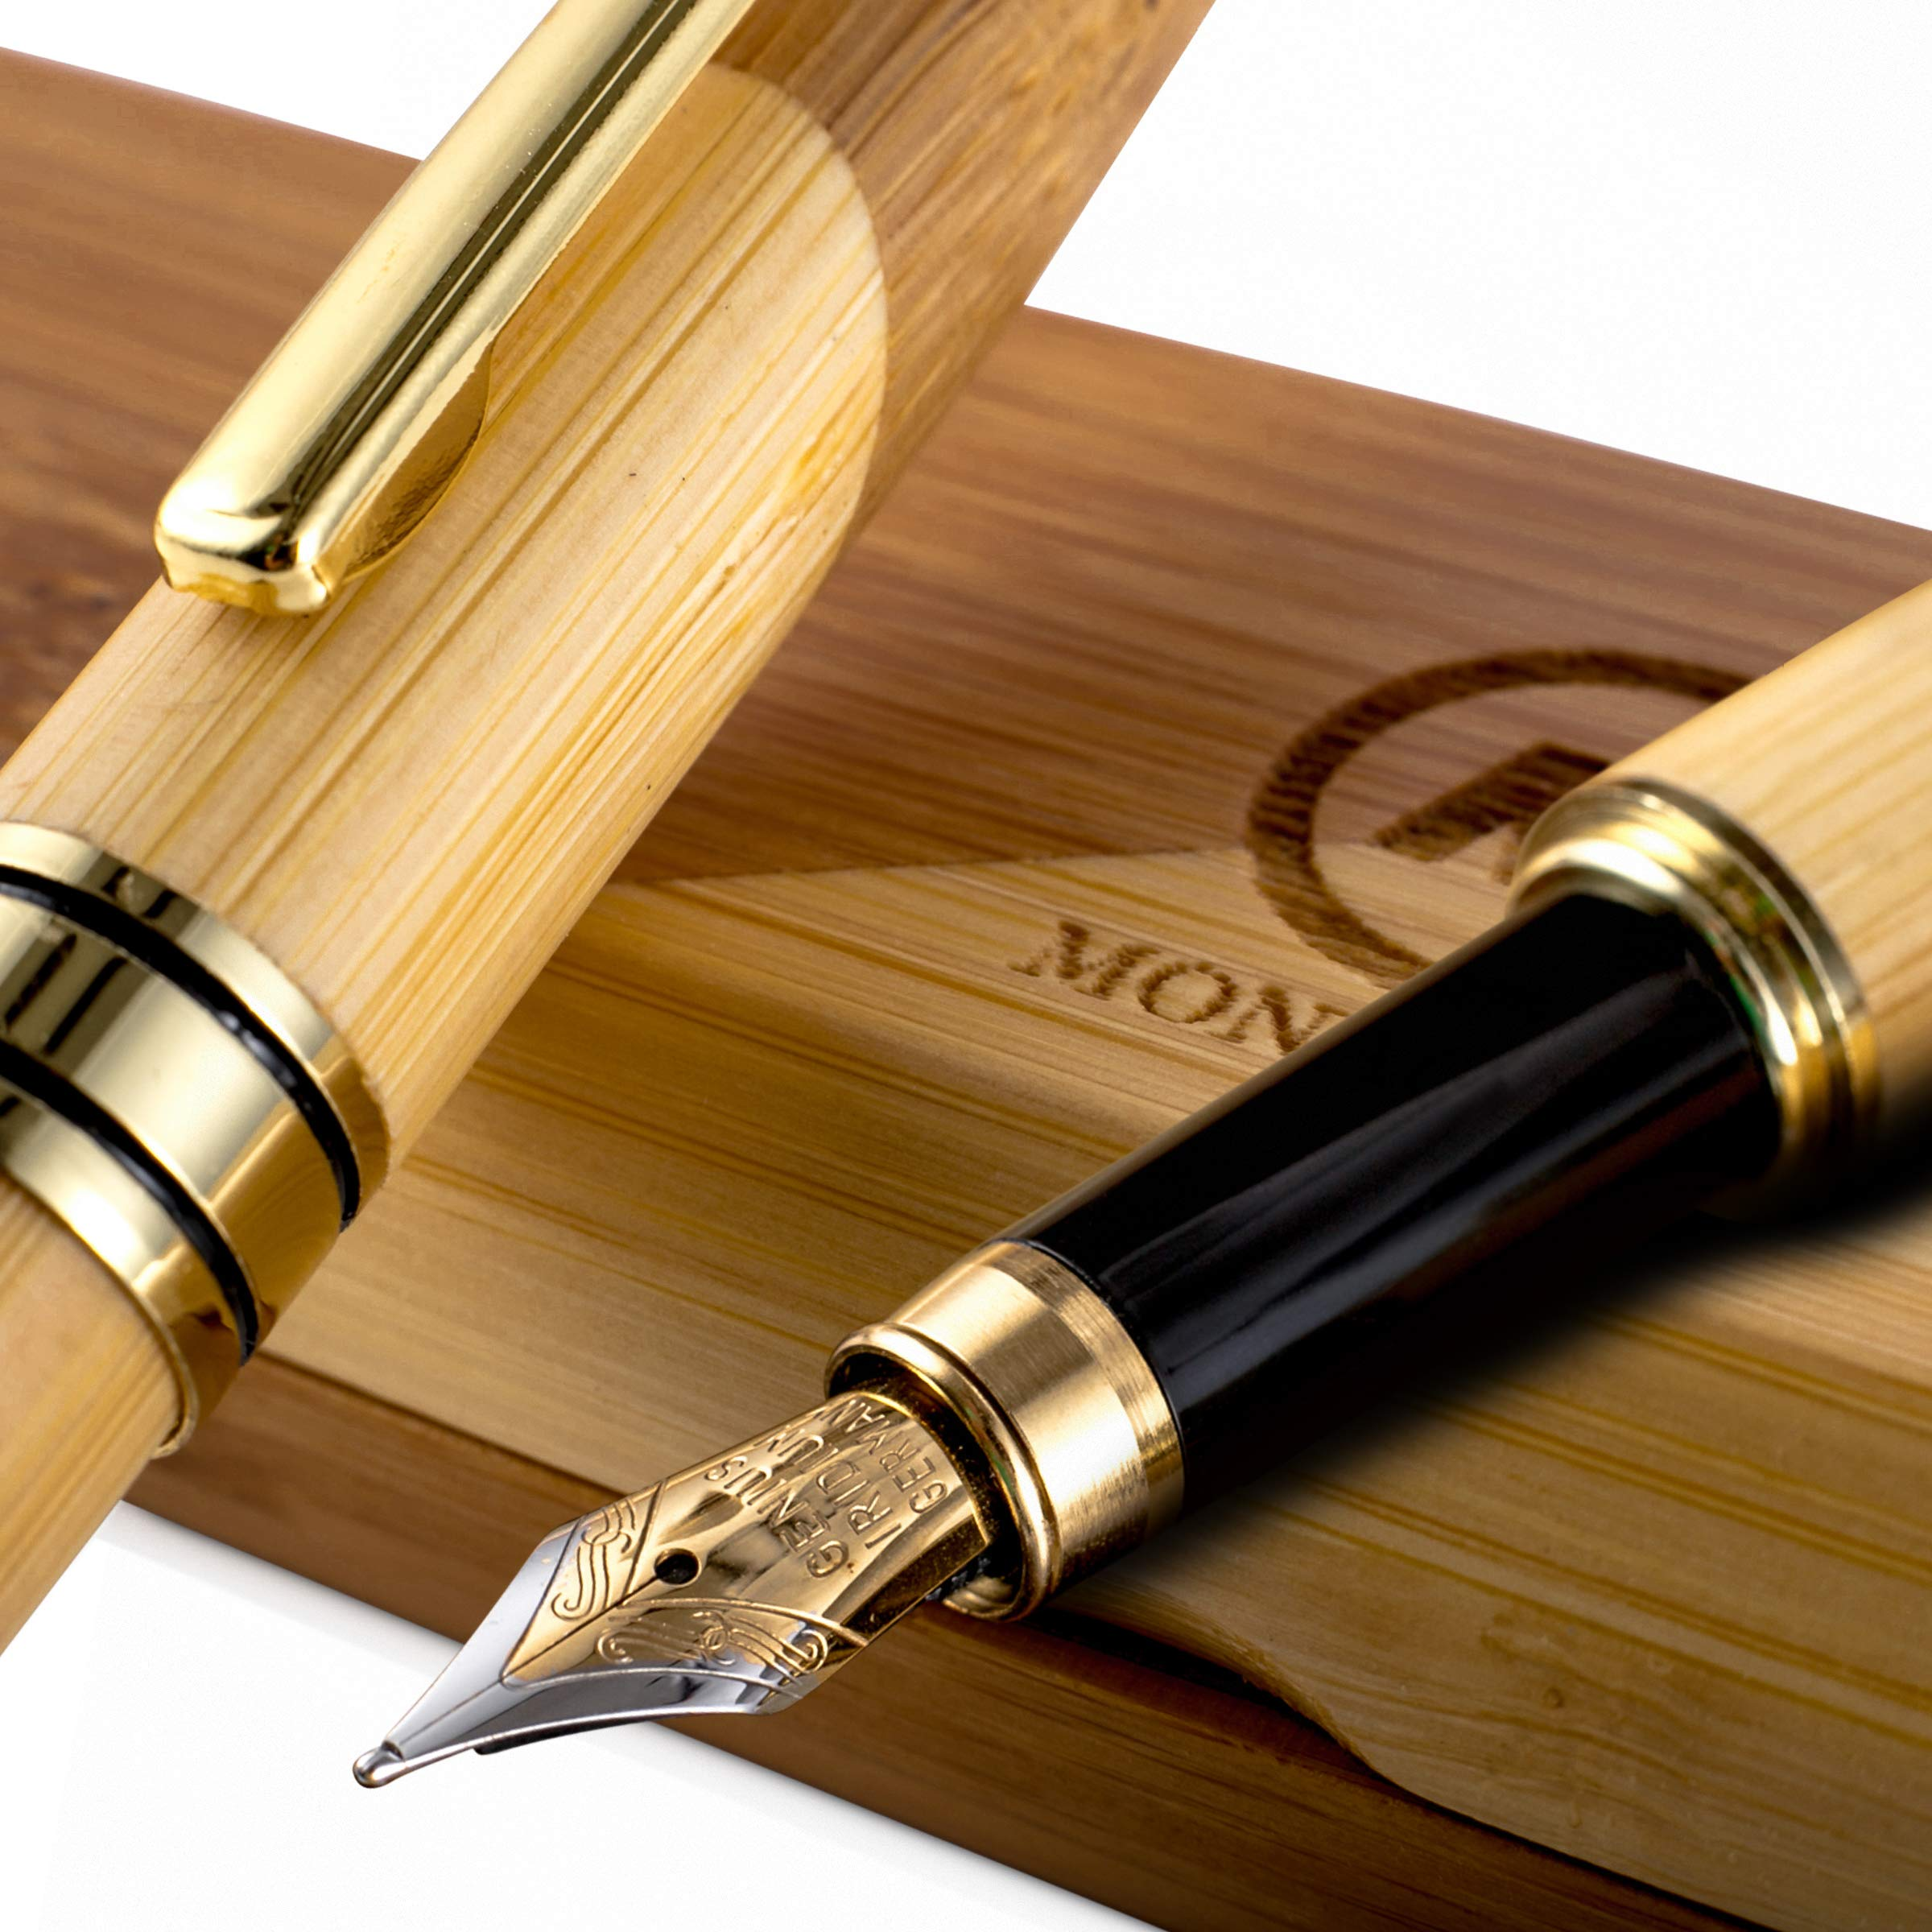 Bamboo Fountain Pen made of Luxury Wood with Refillable Converter, Beautiful Case Set and Medium Nib Point. Works Smoothly with International Disposable Cartridges. Fine Calligraphy Pens School Supply